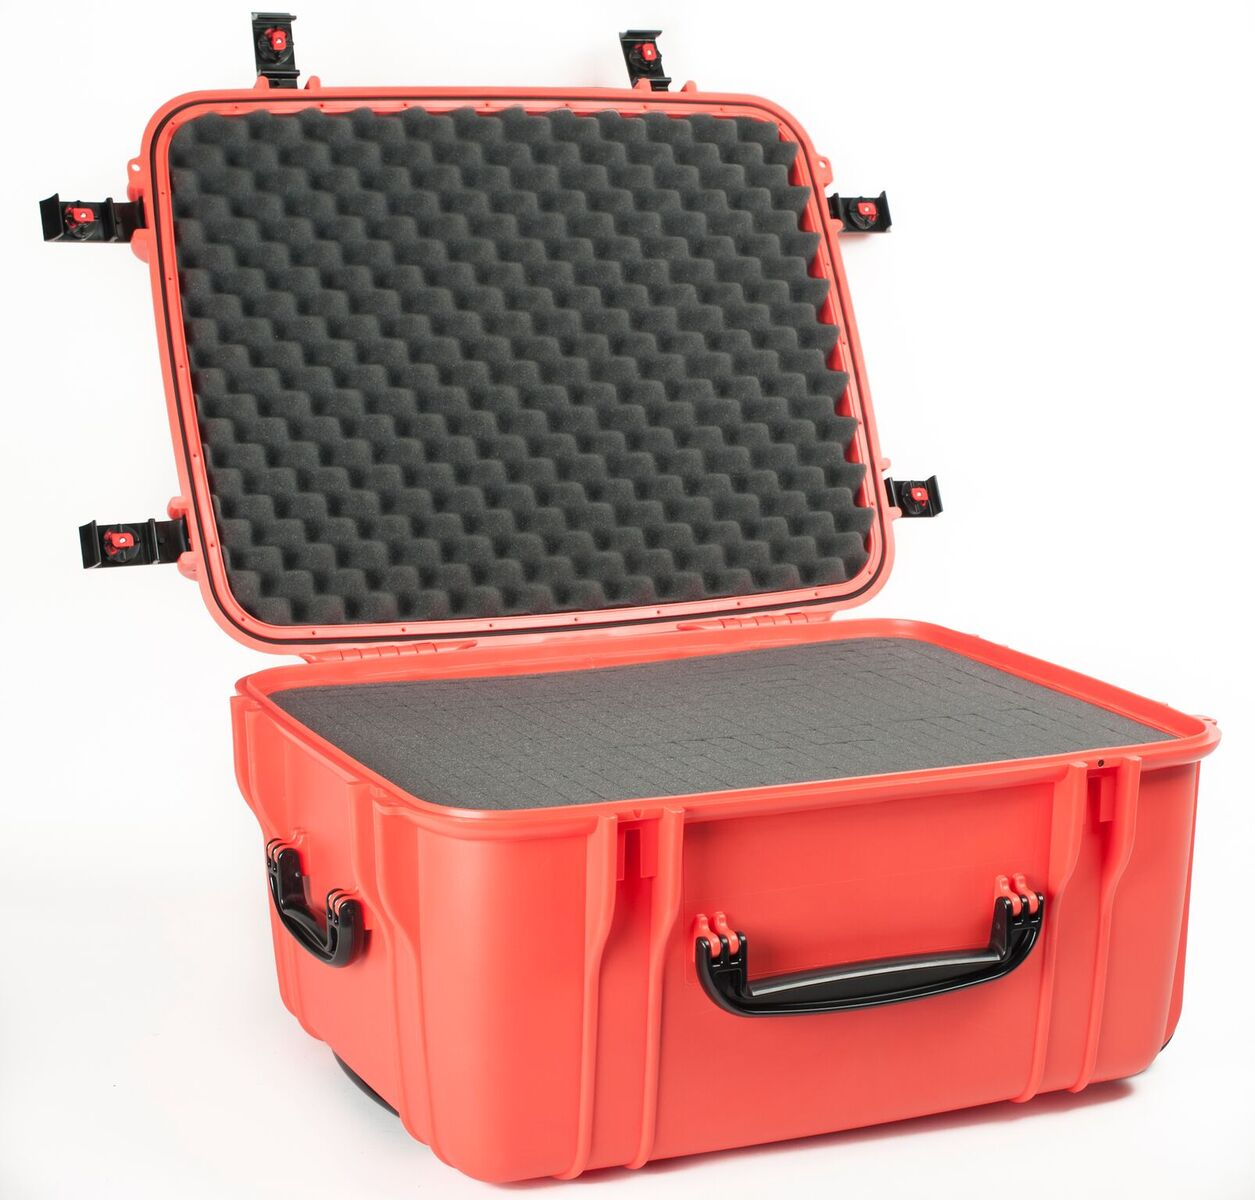 SEAHORSE PROTECTIVE EQUIPMENT CASES      SE1220F,OR